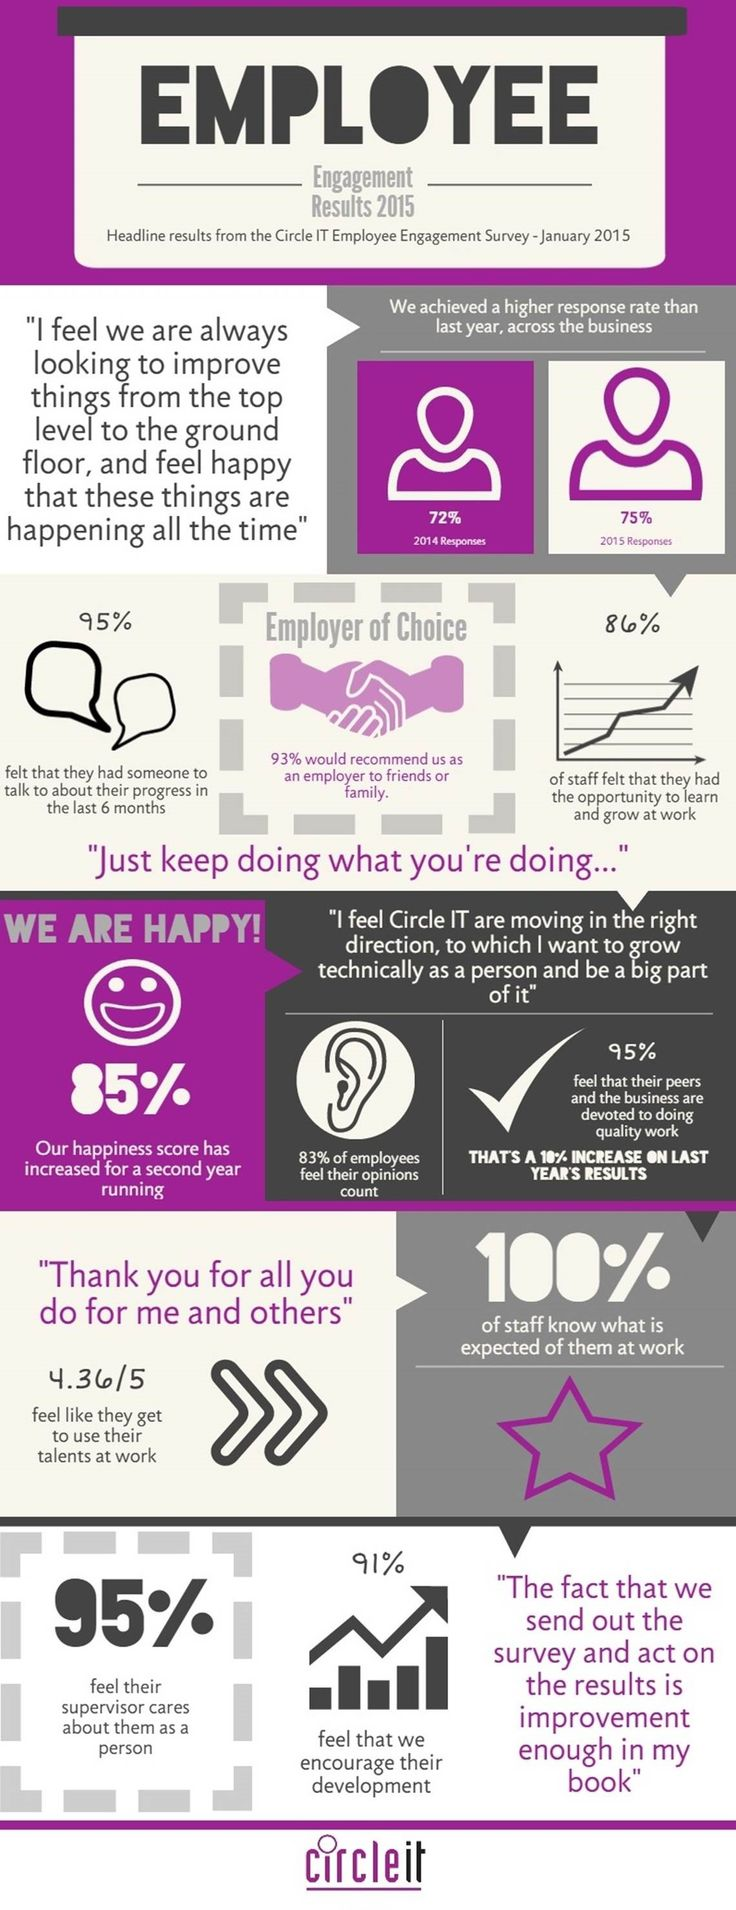 We're celebrating excellent staff engagement results again in 2015! #EmployeeEngagement #EmployerofChoice